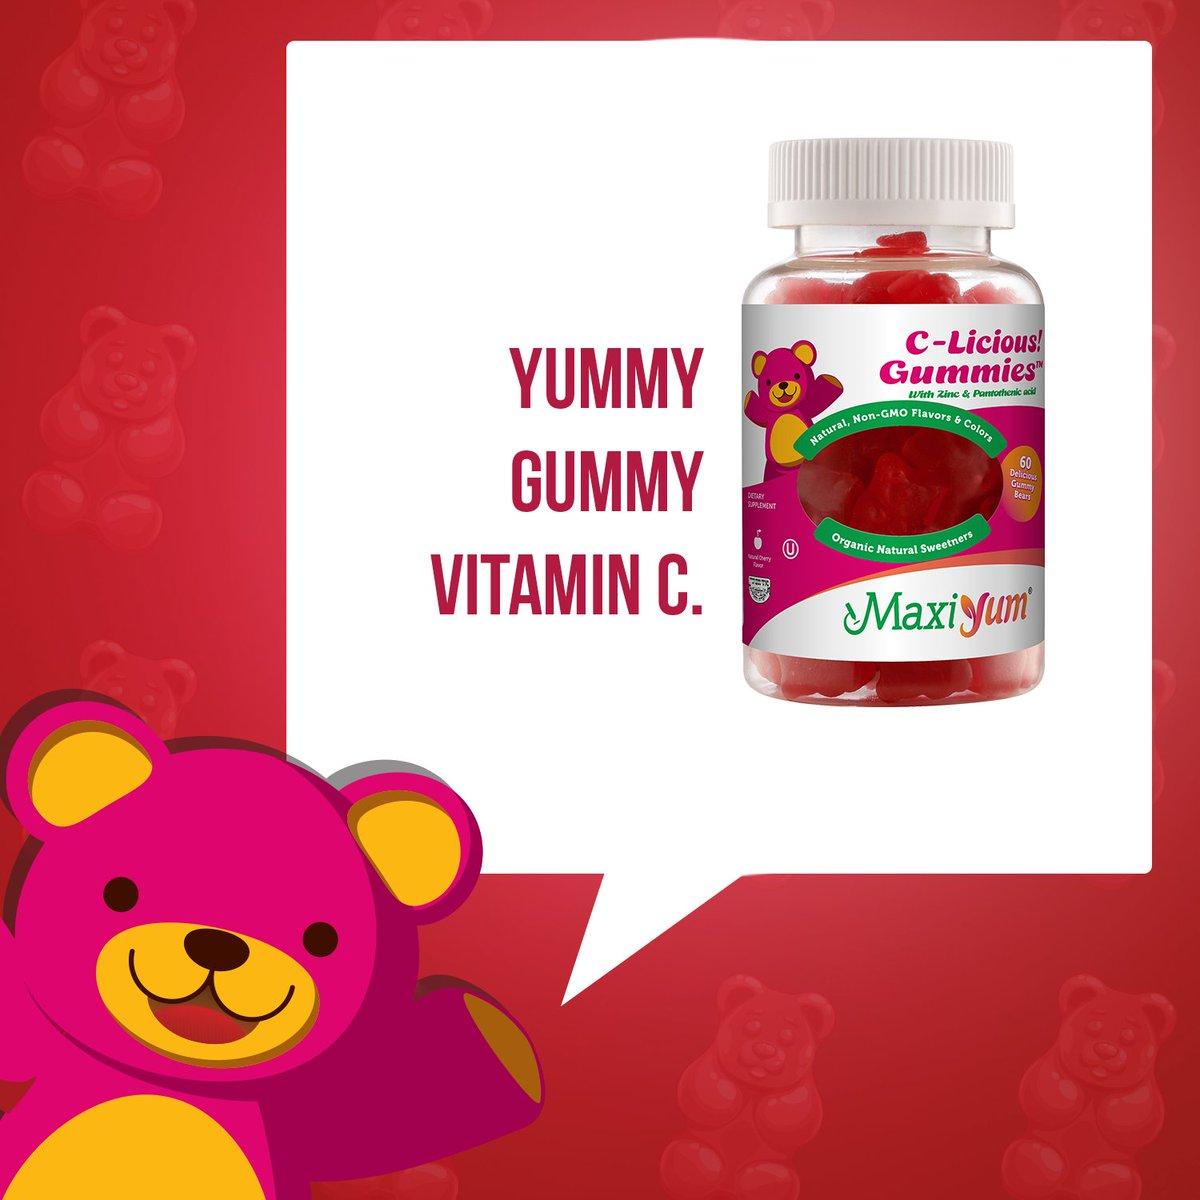 Maxi Health On Twitter Boost Yours And Your Kids Immune Systems Wellness Gummy 30 Gummies With Maxiyum C Licious Filled Vitamin B5 Zinc